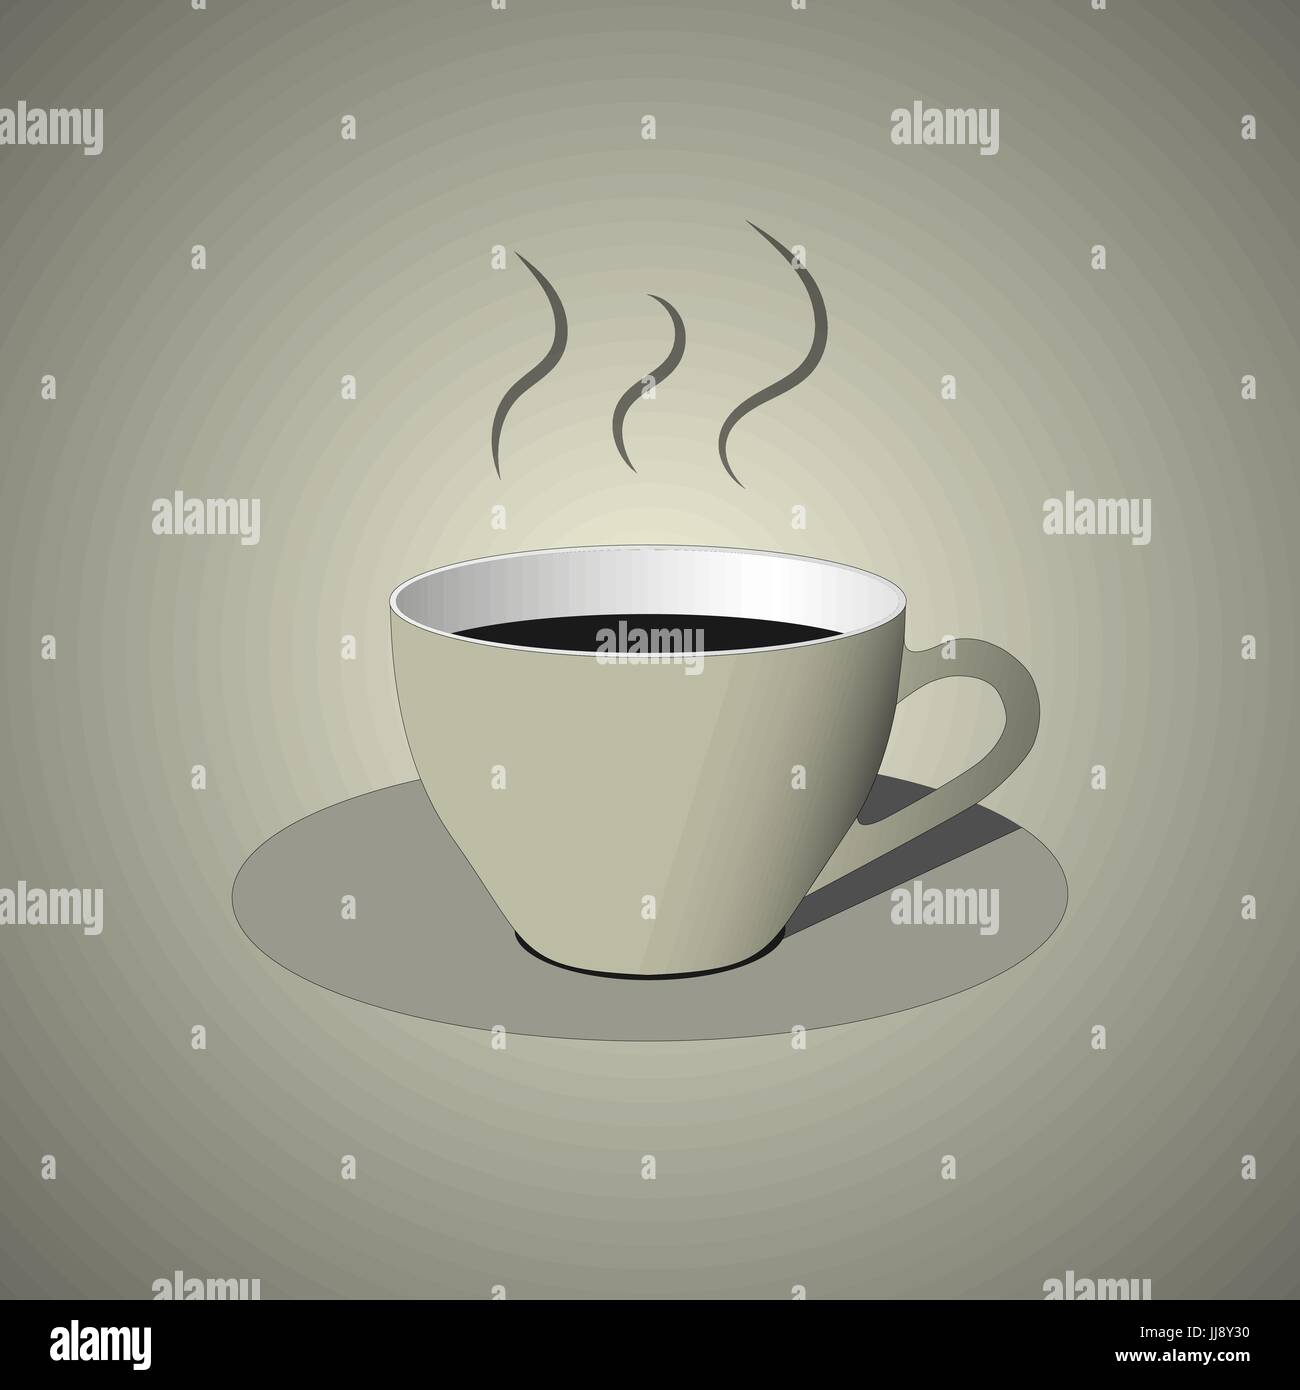 White cup with fresh blended coffee icon, flat design in black and white colors Stock Vector